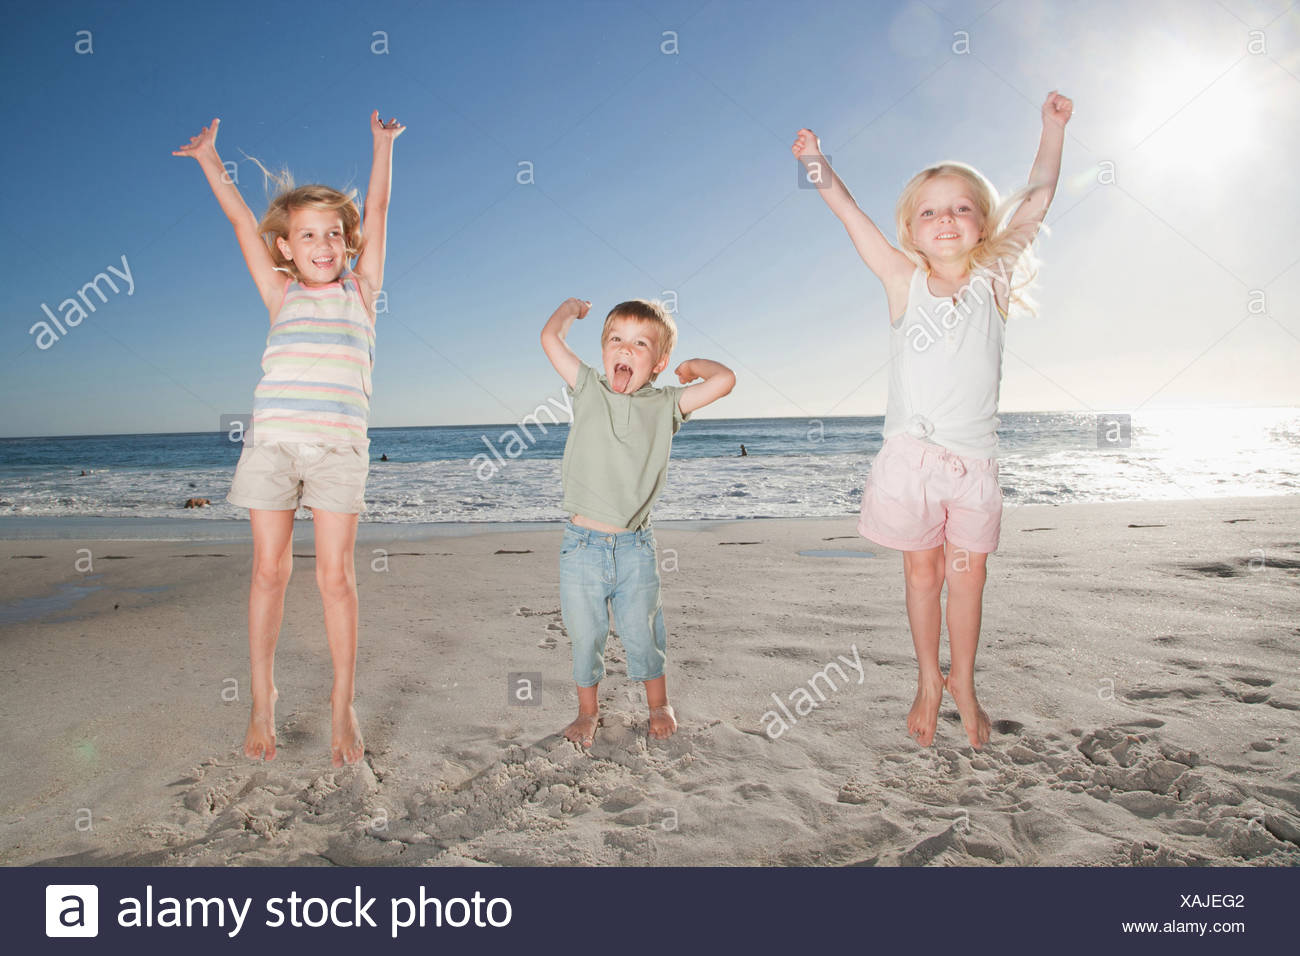 Kids on beach with arms raised - Stock Image